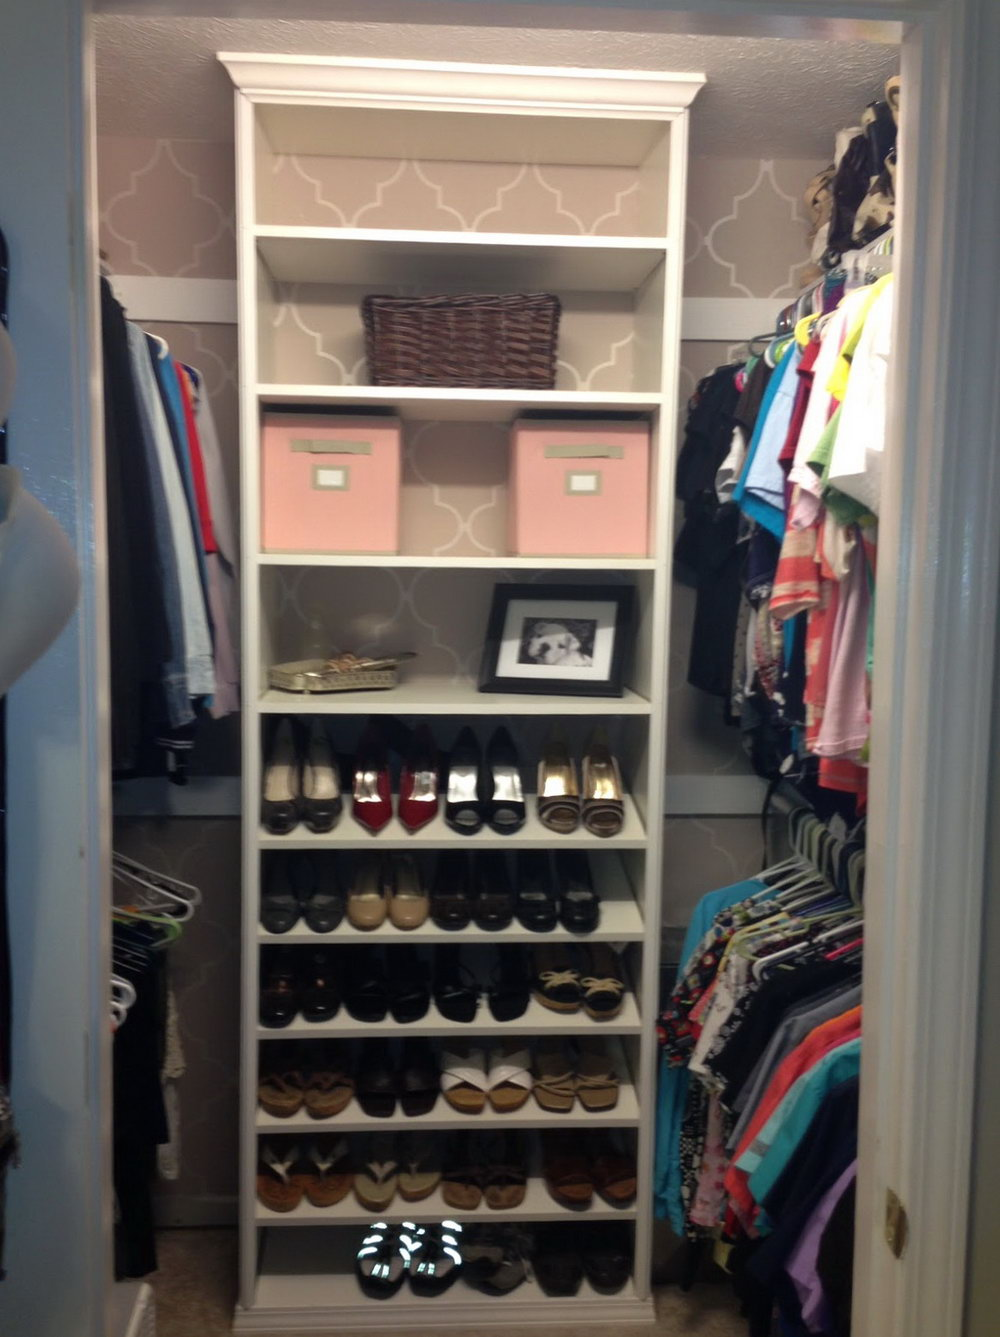 Diy Walk in Closet Systems | Diy Walkin Closet | Diy Walk in Closet